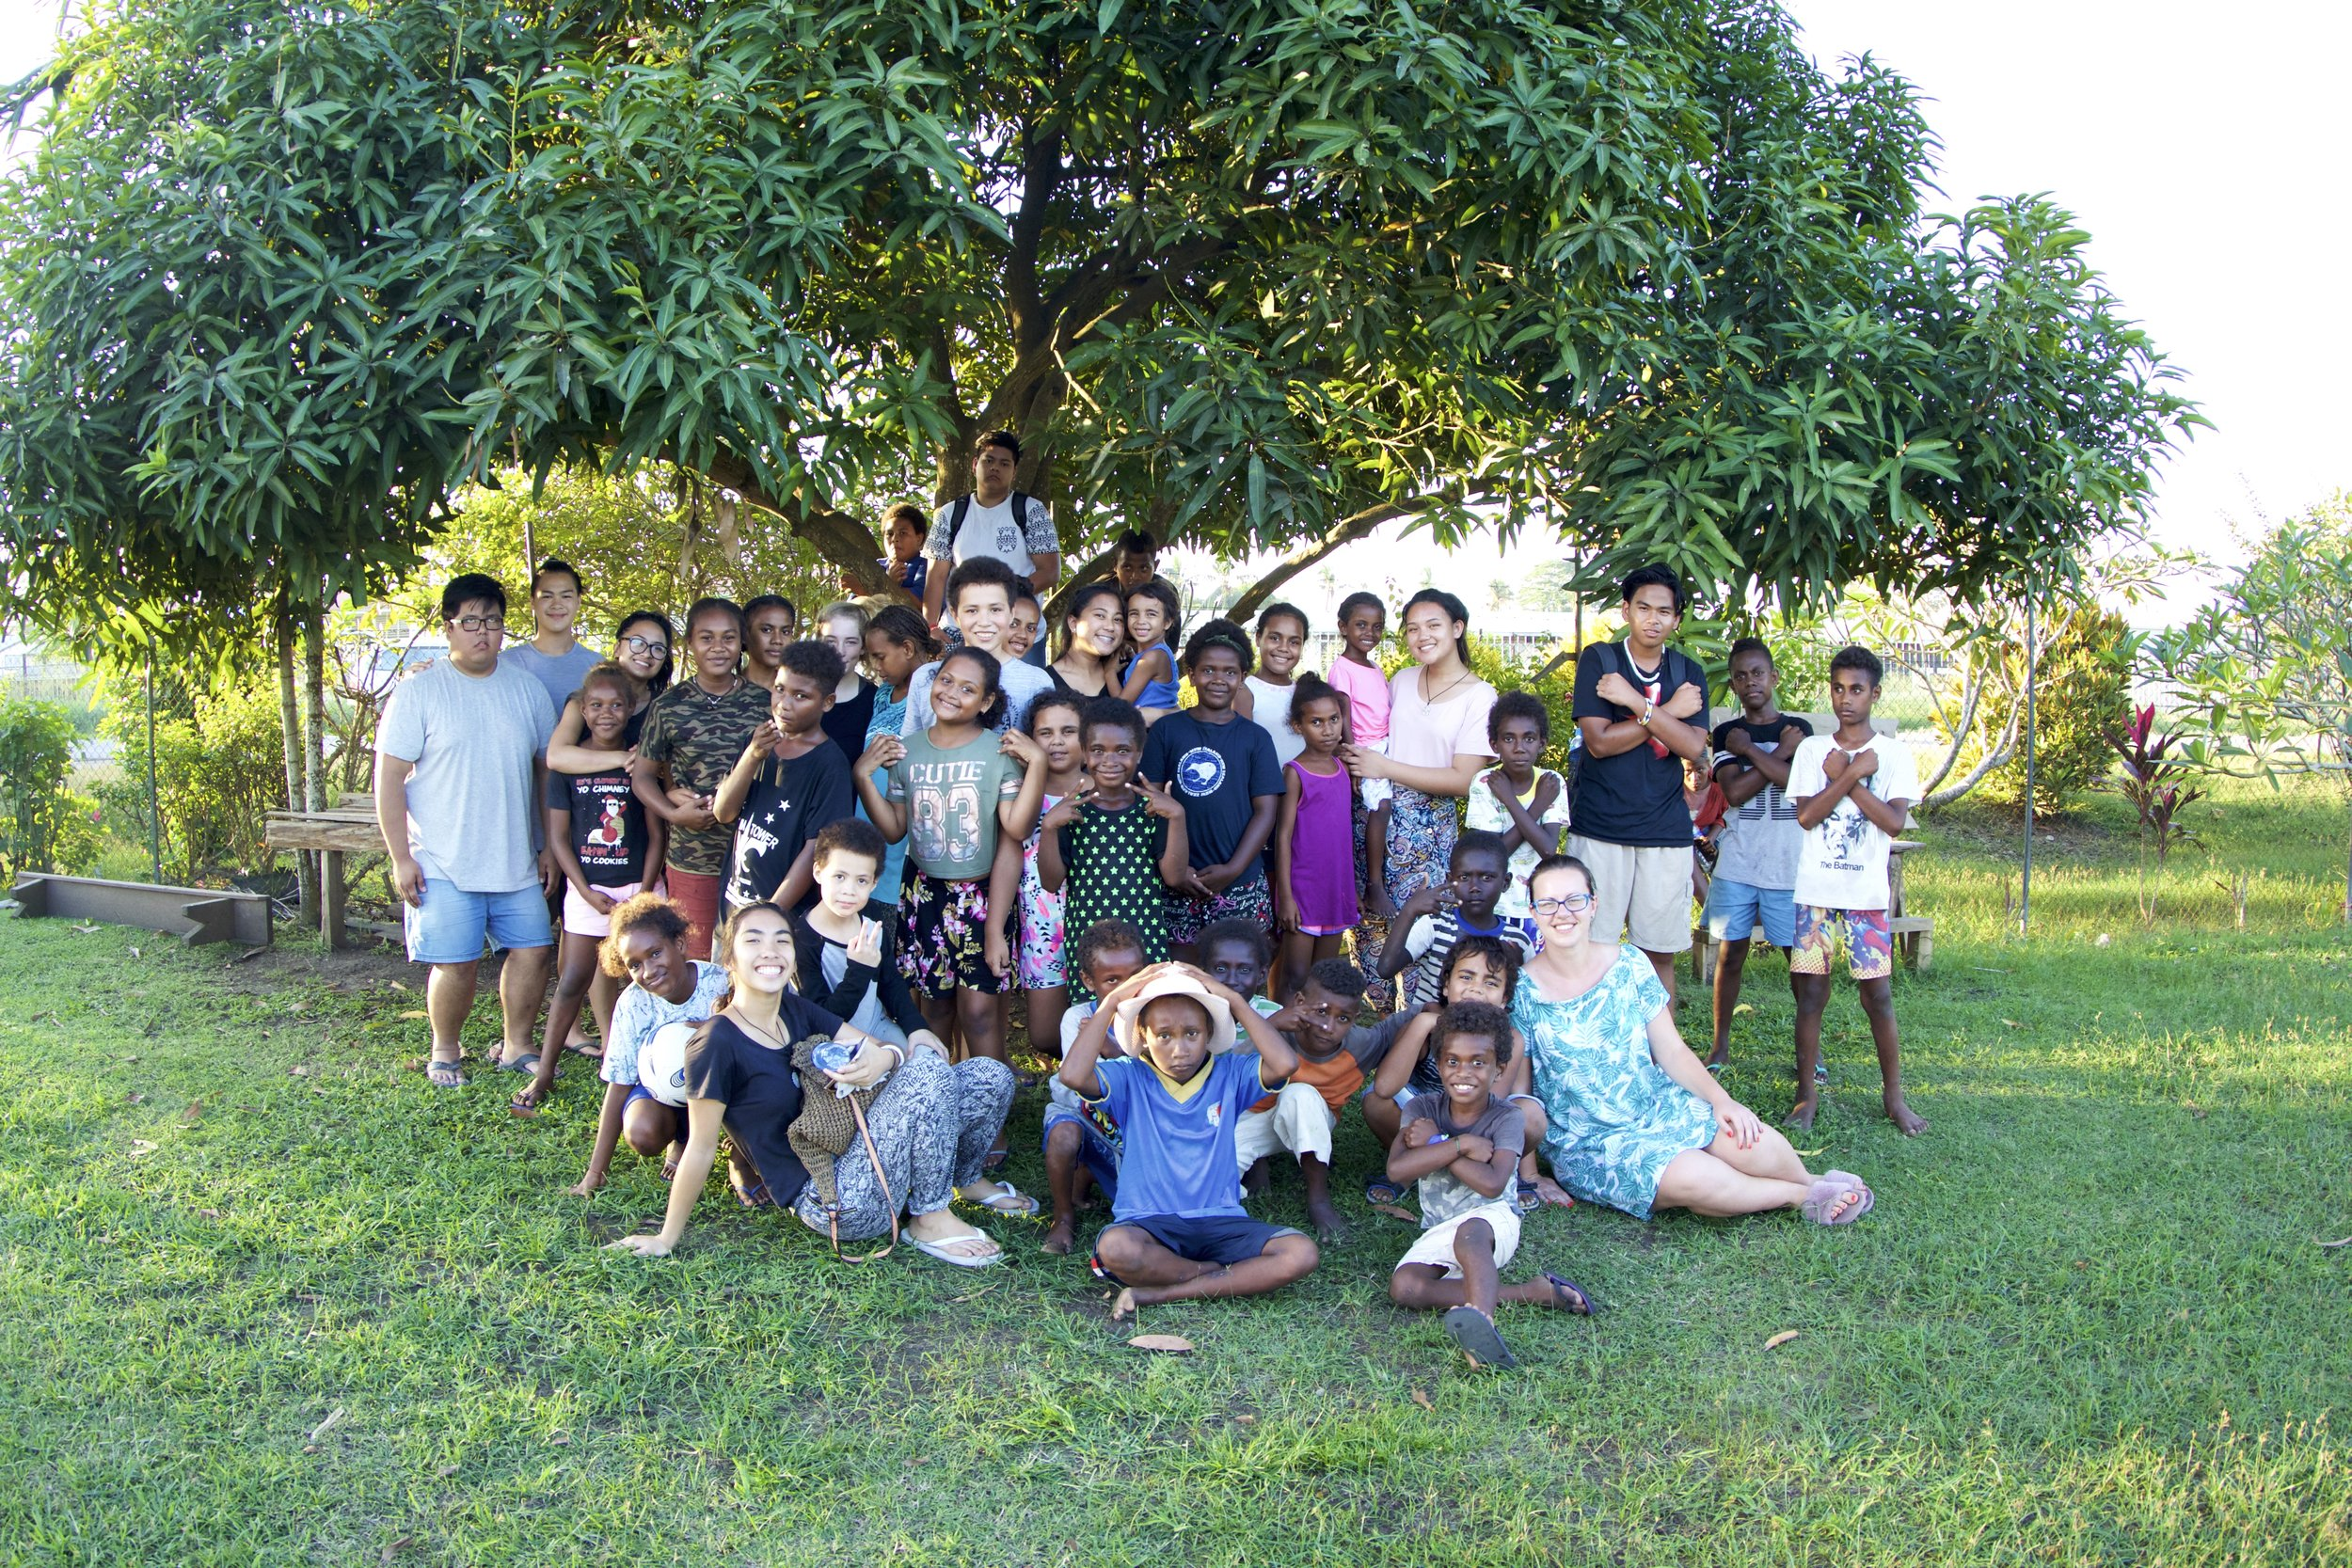 Adelaide Christian Centre in Solomon Islands 2018   It was a delight for me to go to the Solomon Islands with 11 young people from our church (Adelaide Christian Centre) in July 2018. We had a…